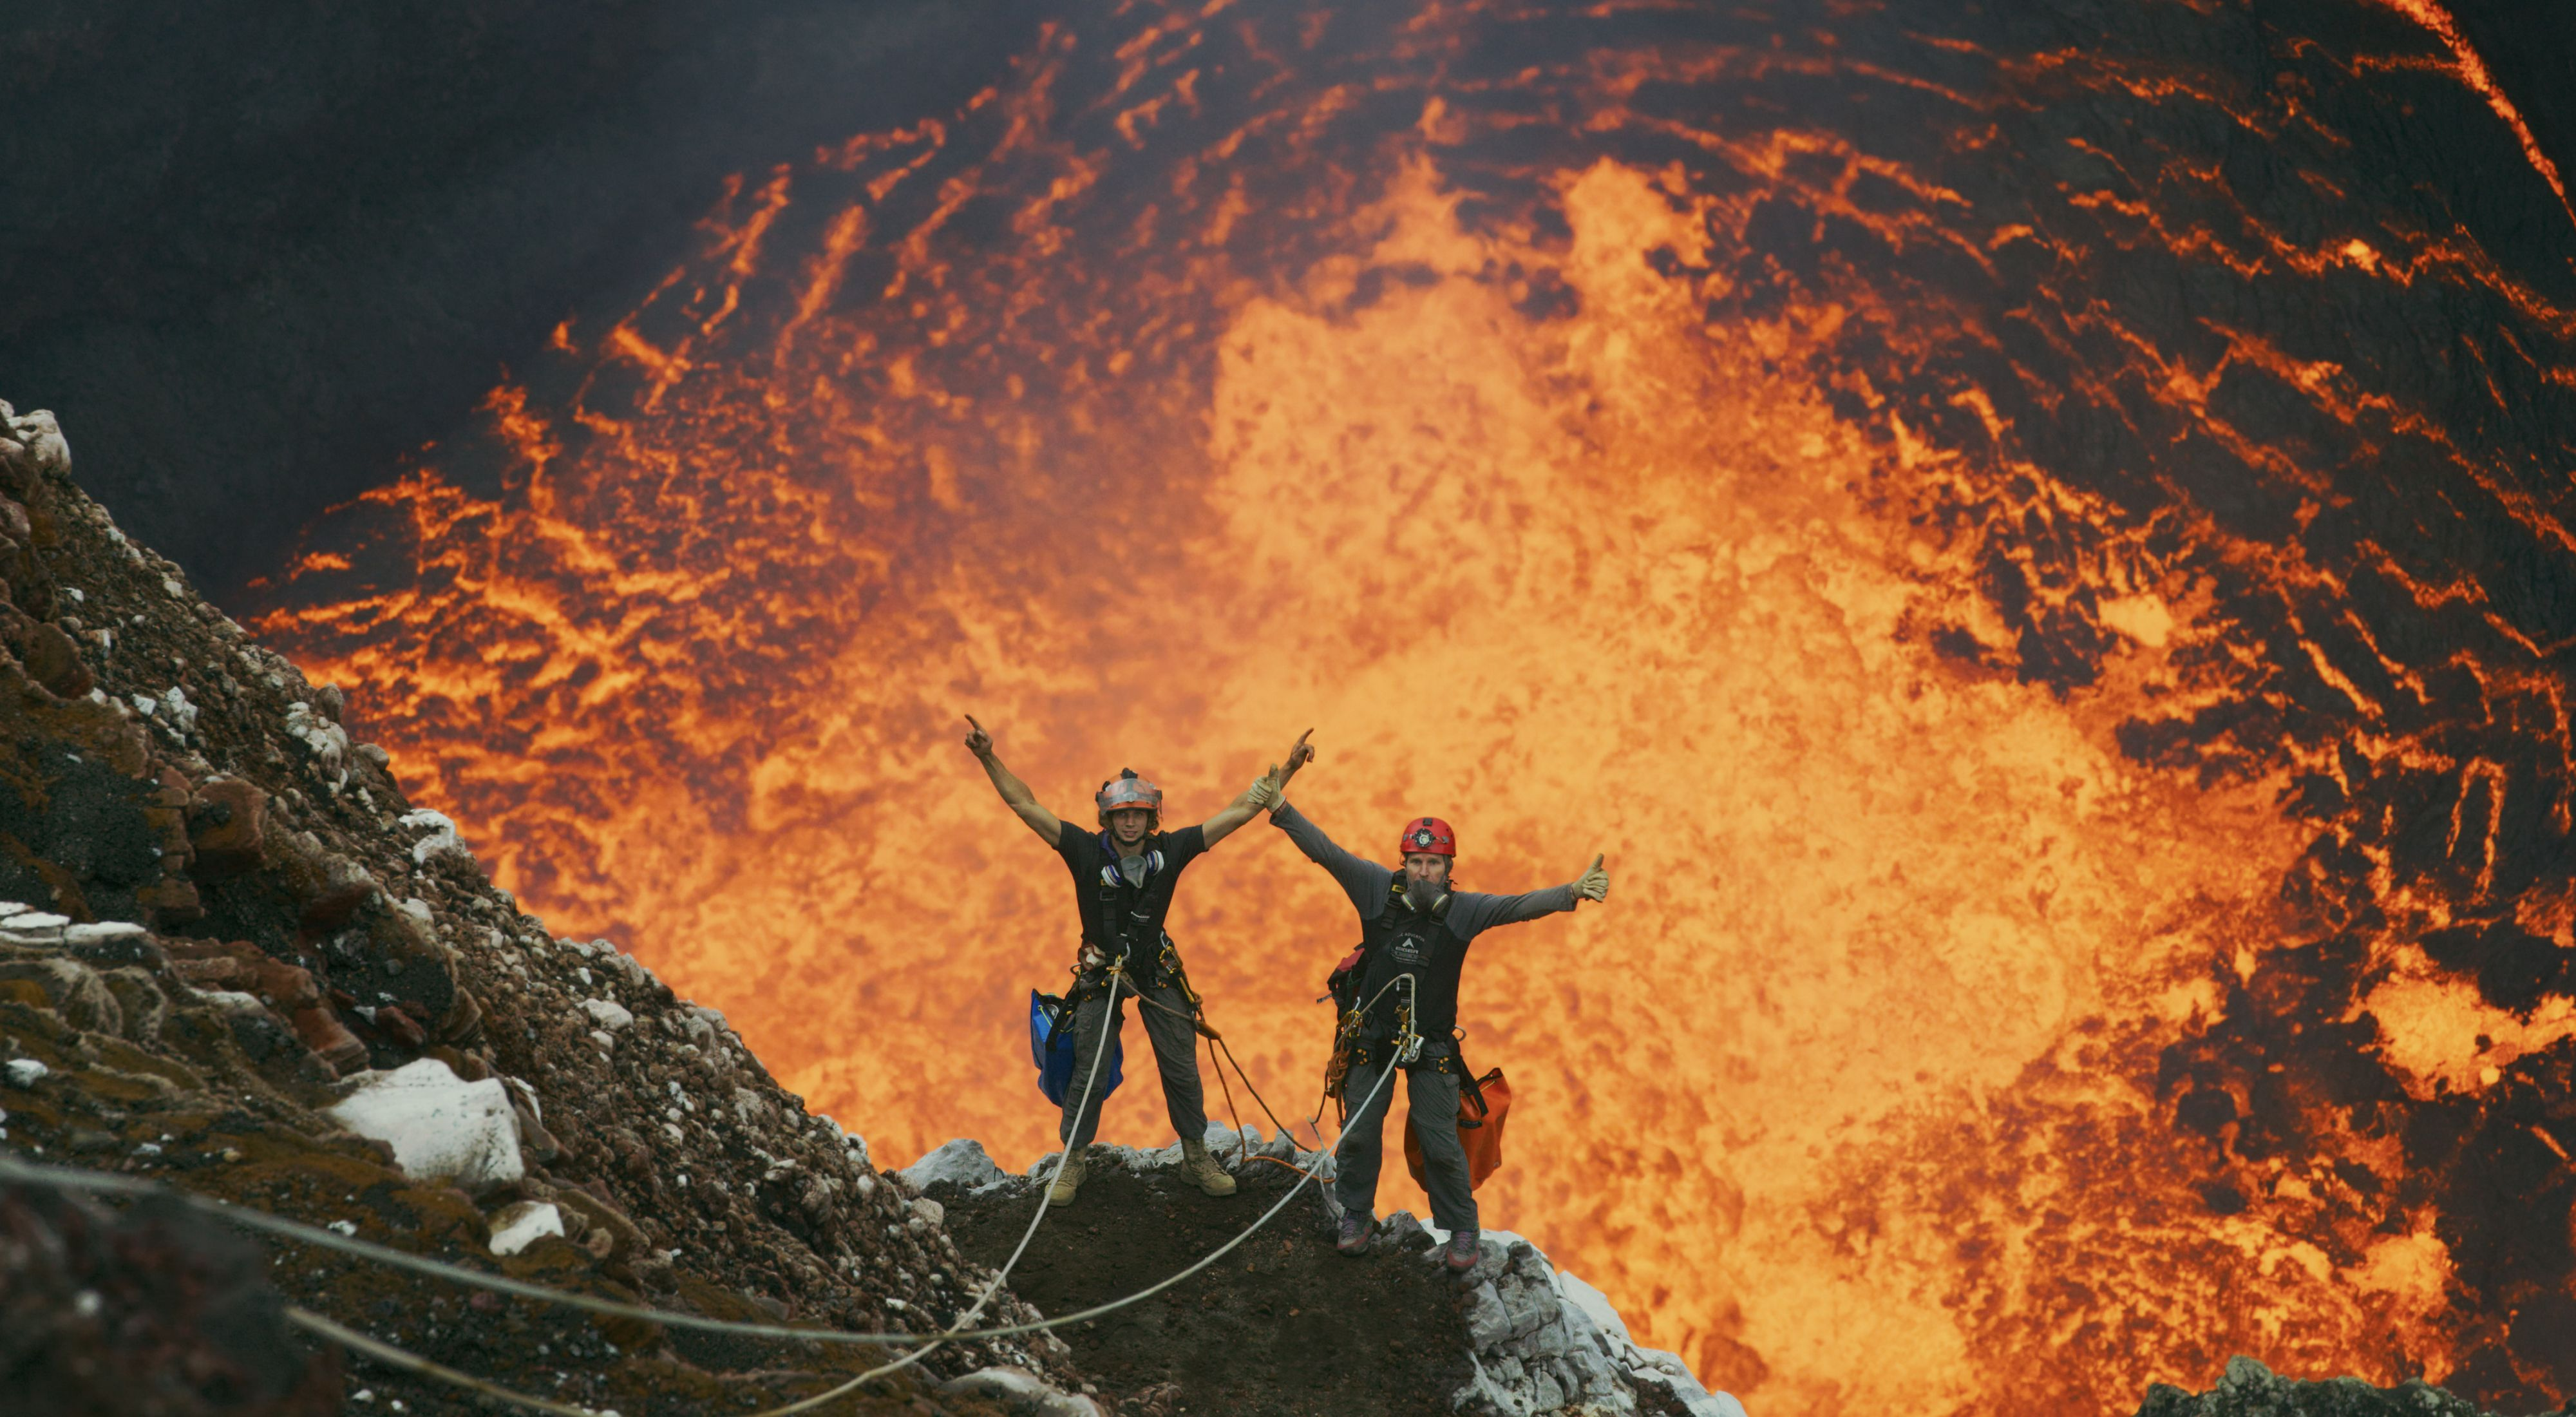 National Geographic photographers Carsten Peters and Chris Horsley descend into the Ambrym Volcano's Marum Crater on Vanuatu.